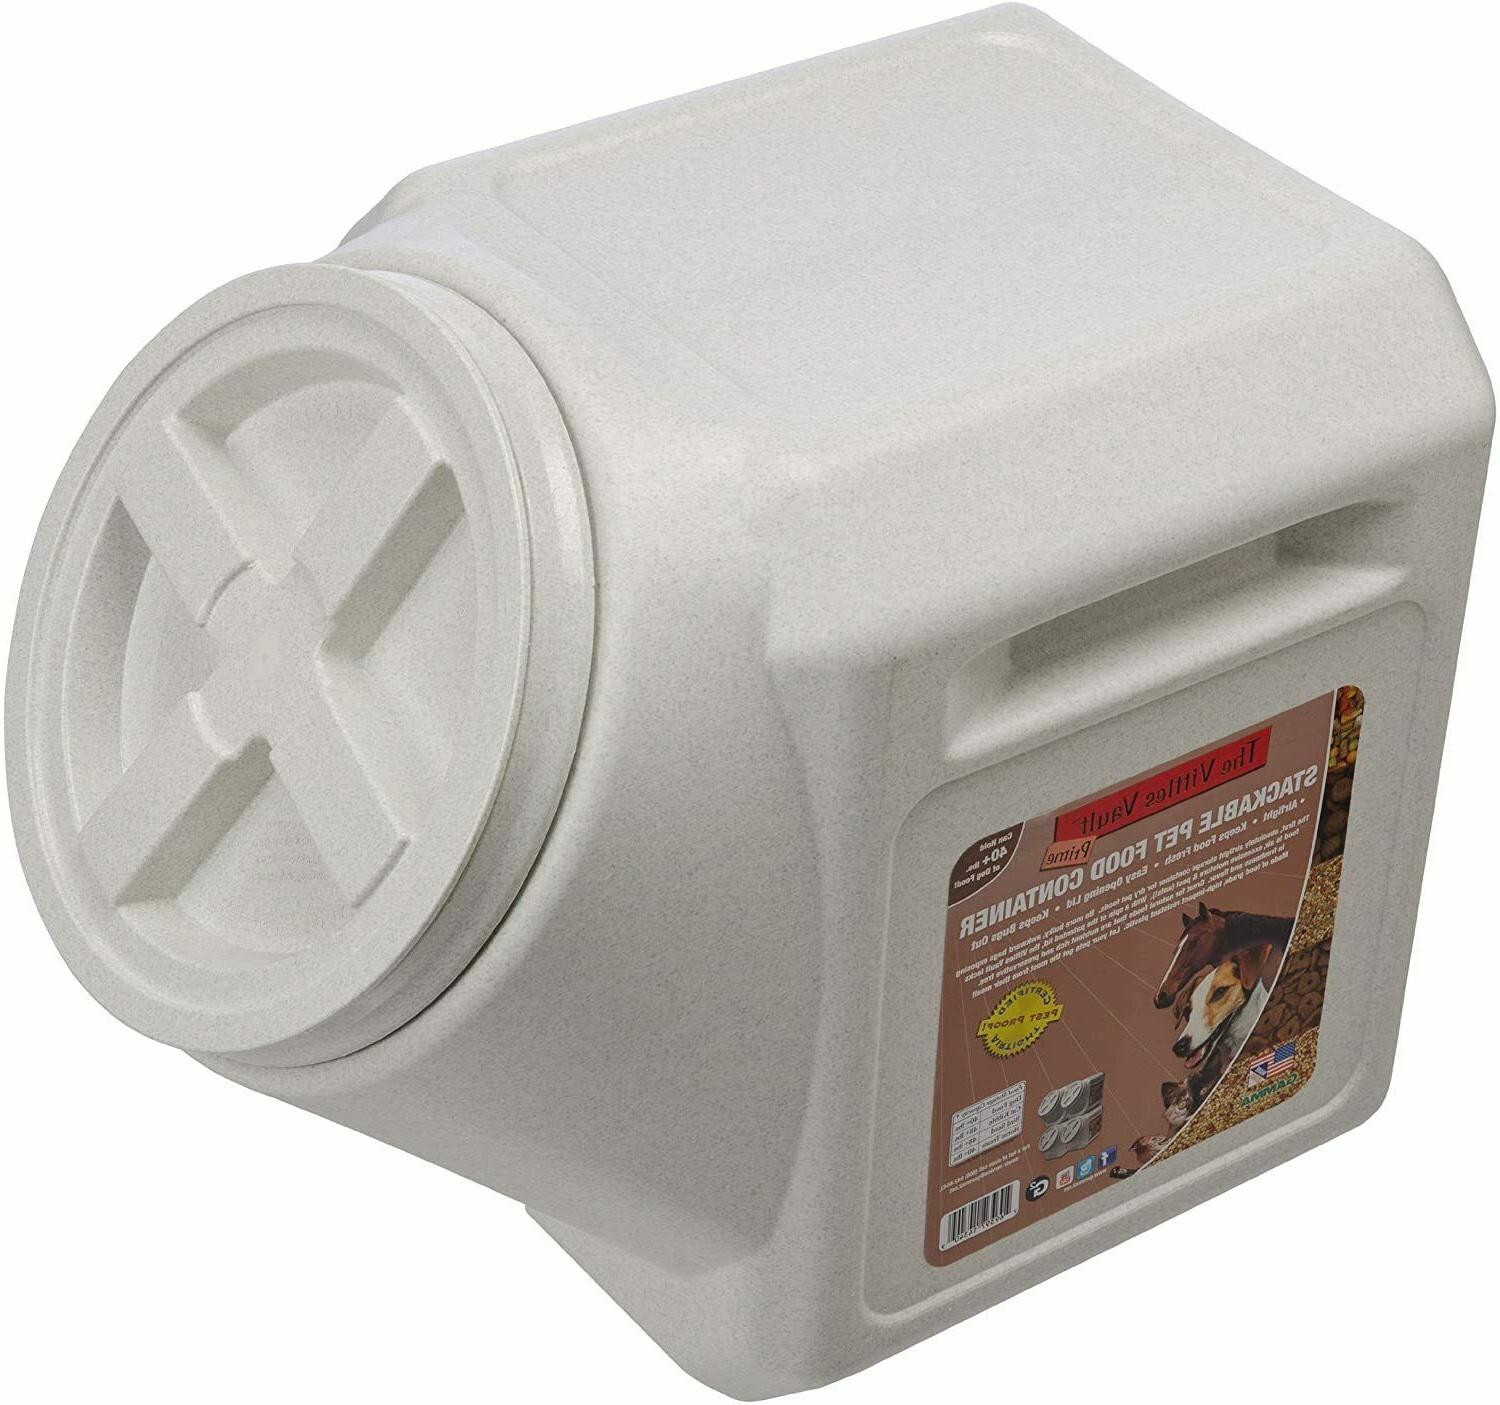 New Food Storage Airtight Container Stackable Outback Vault 40 lb